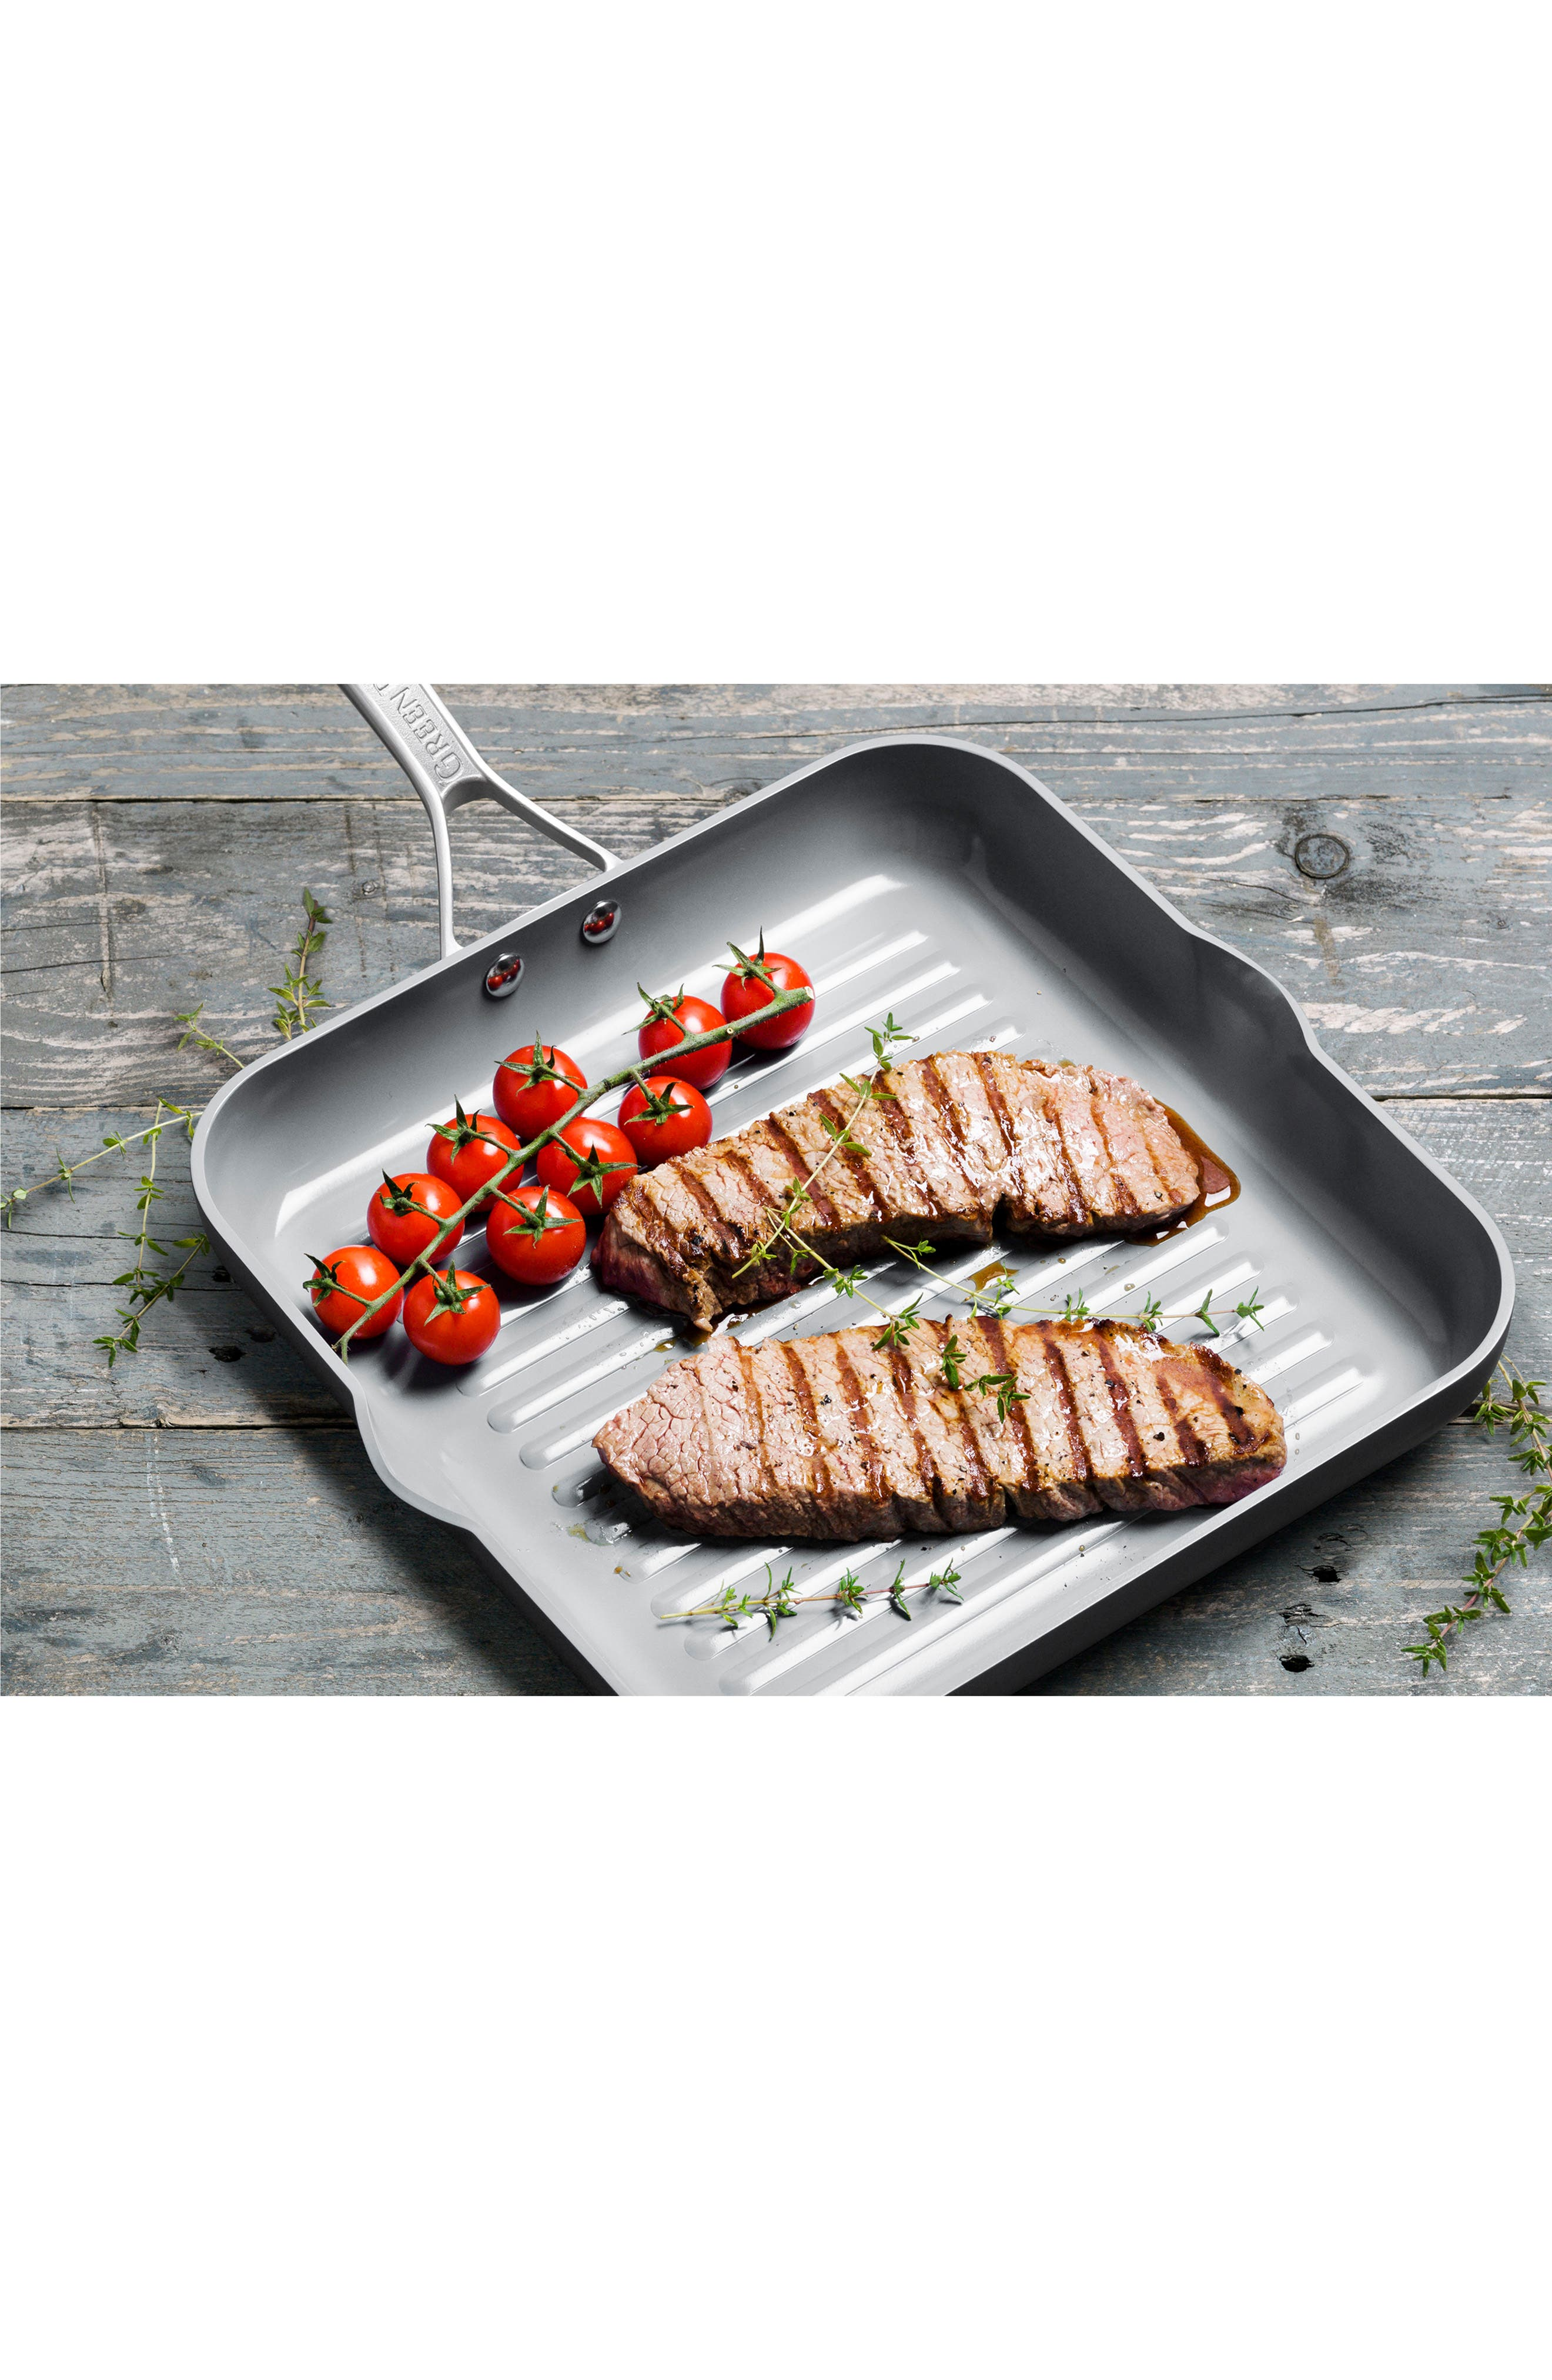 Paris 11-Inch Anodized Aluminum Ceramic Nonstick Grill Pan,                             Alternate thumbnail 4, color,                             020